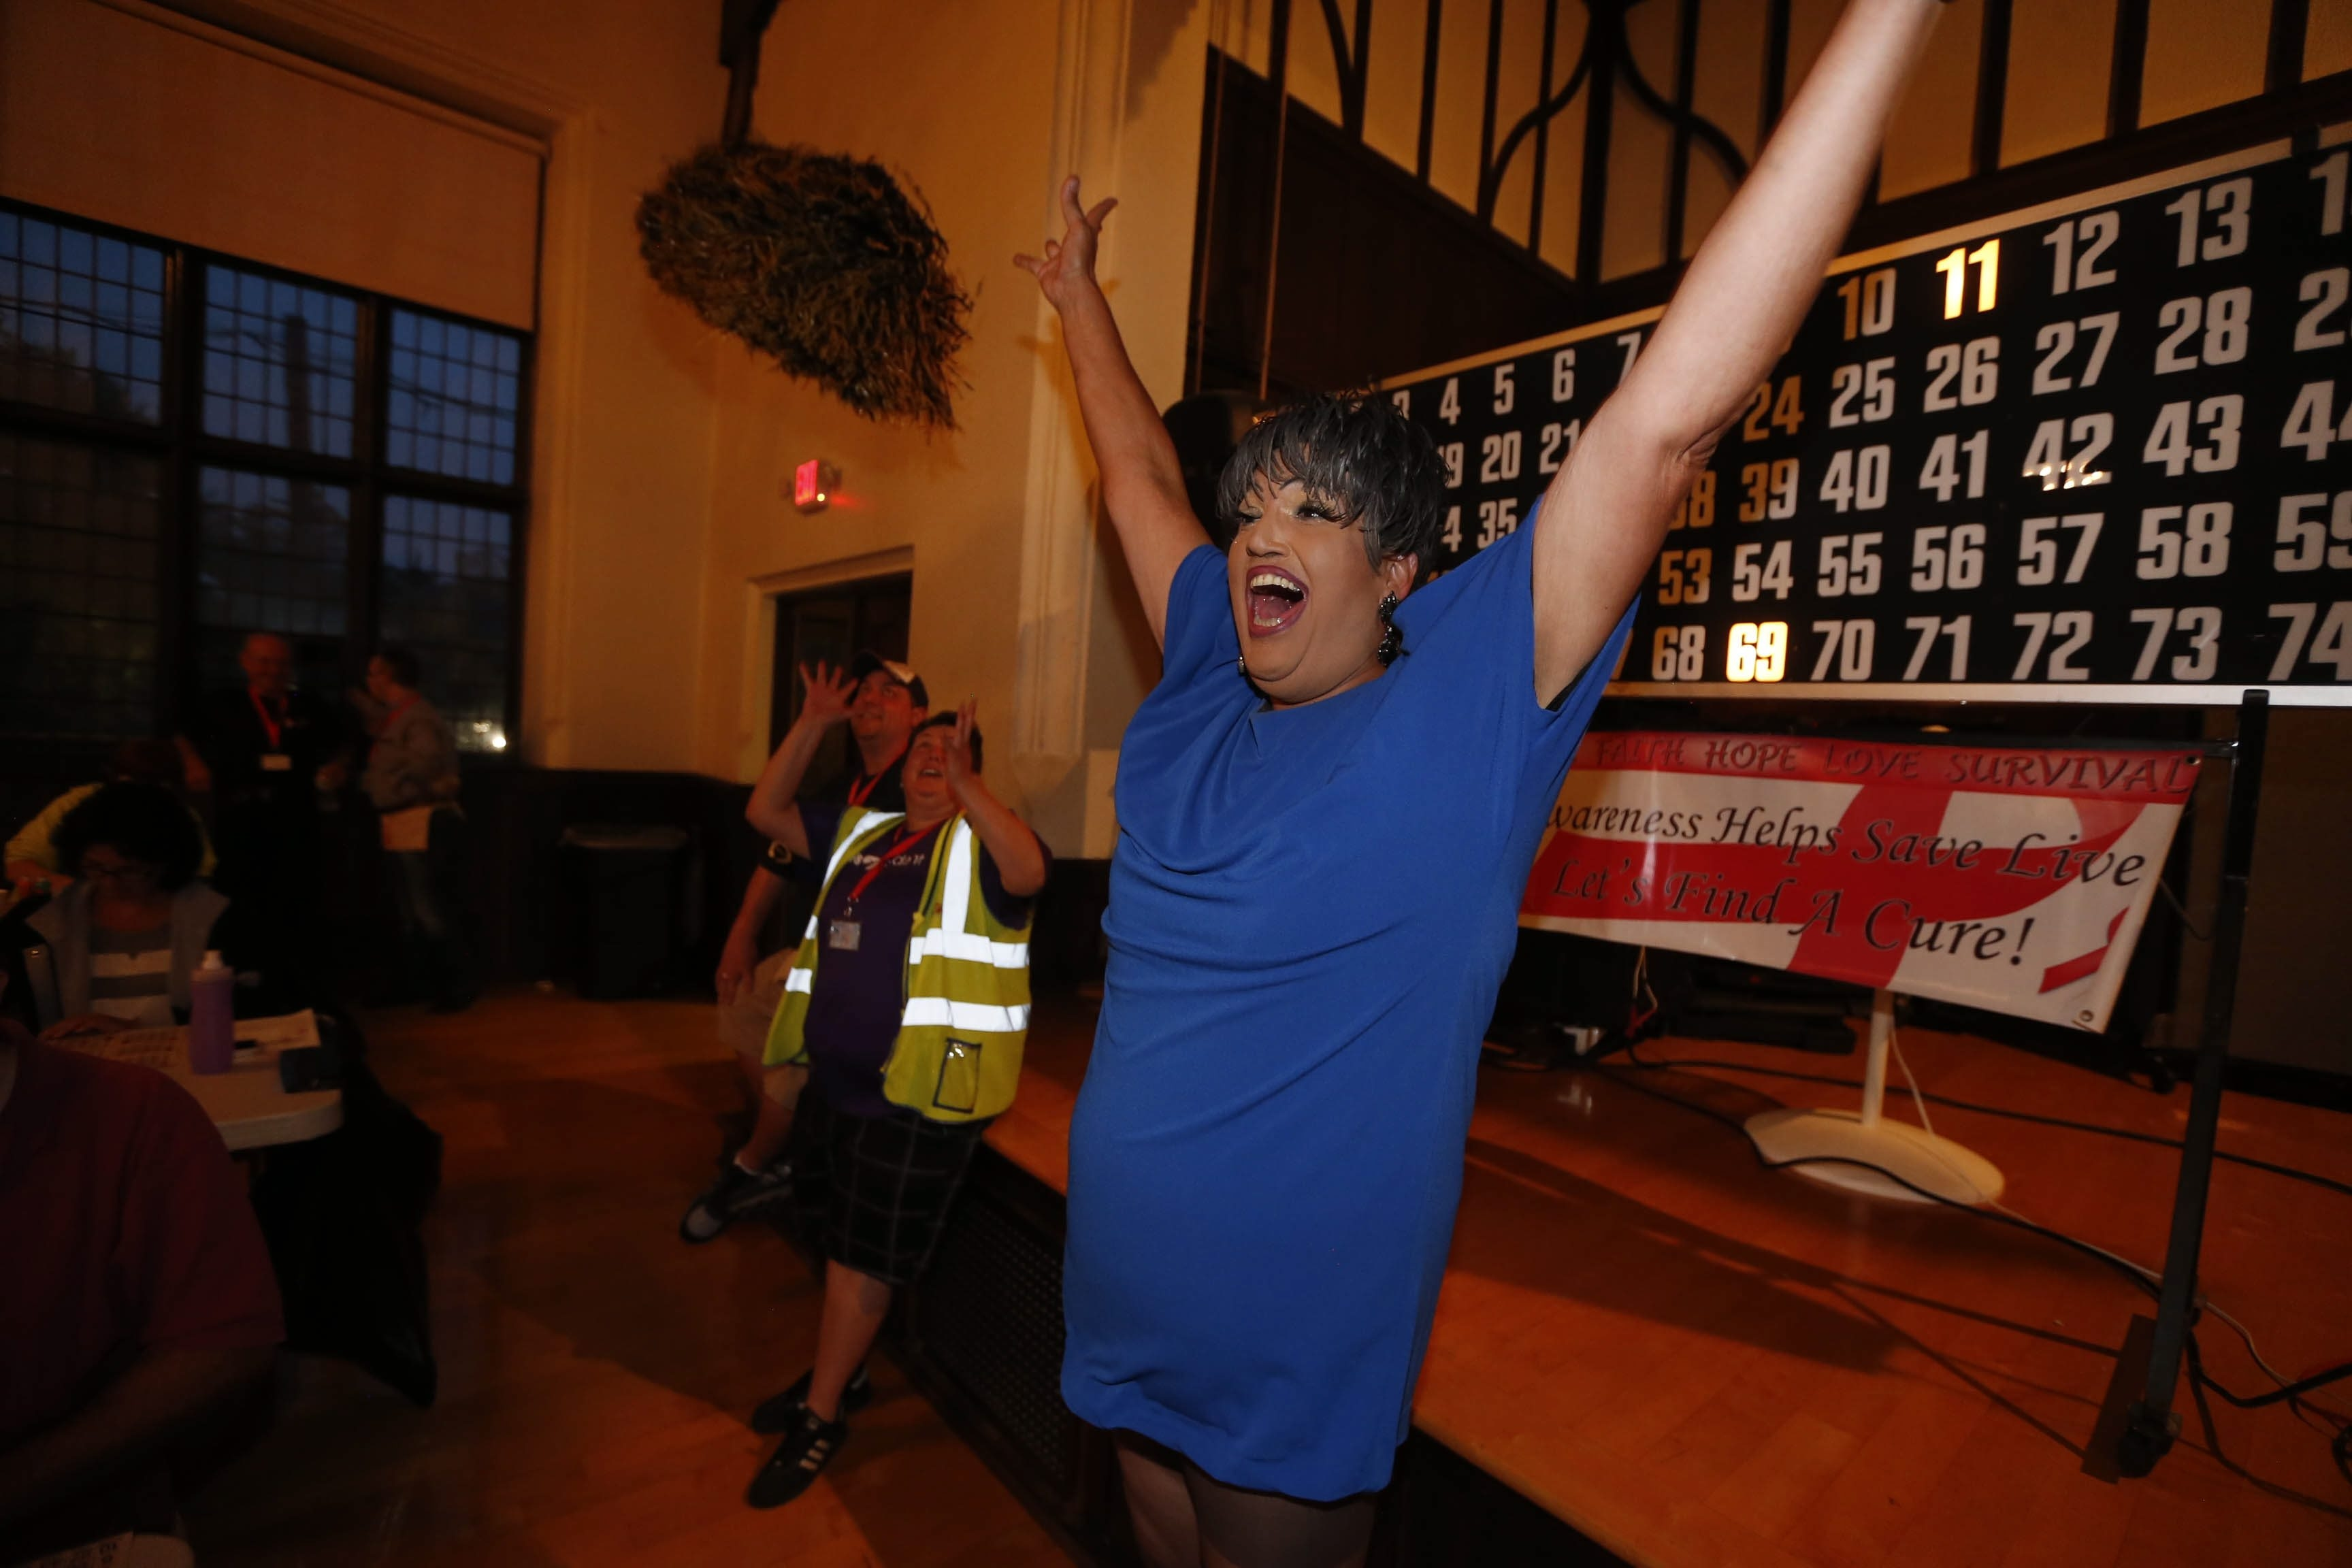 """I love entertaining. It's my persona. I like making people laugh and have a good time."" – Emcee drag queen Gladys Over tells jokes and keeps the party going during Gay Bingo Night at Westminster Presbyterian Church."